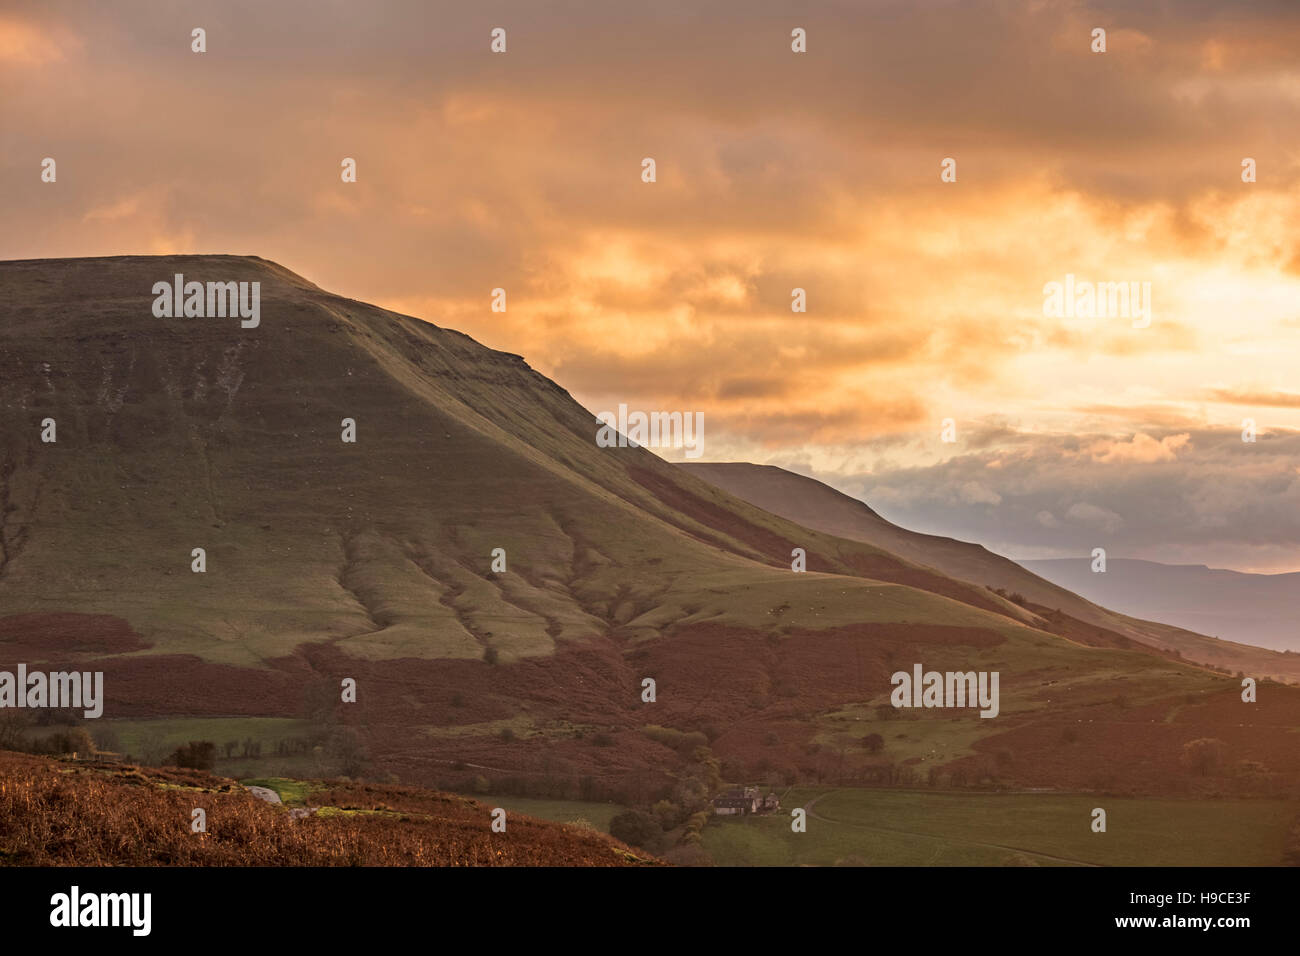 Sunset over Twmpa from the slopes of Hay Bluff on the Gospel Pass, Brecon Beacons National Park, Wales, UK - Stock Image